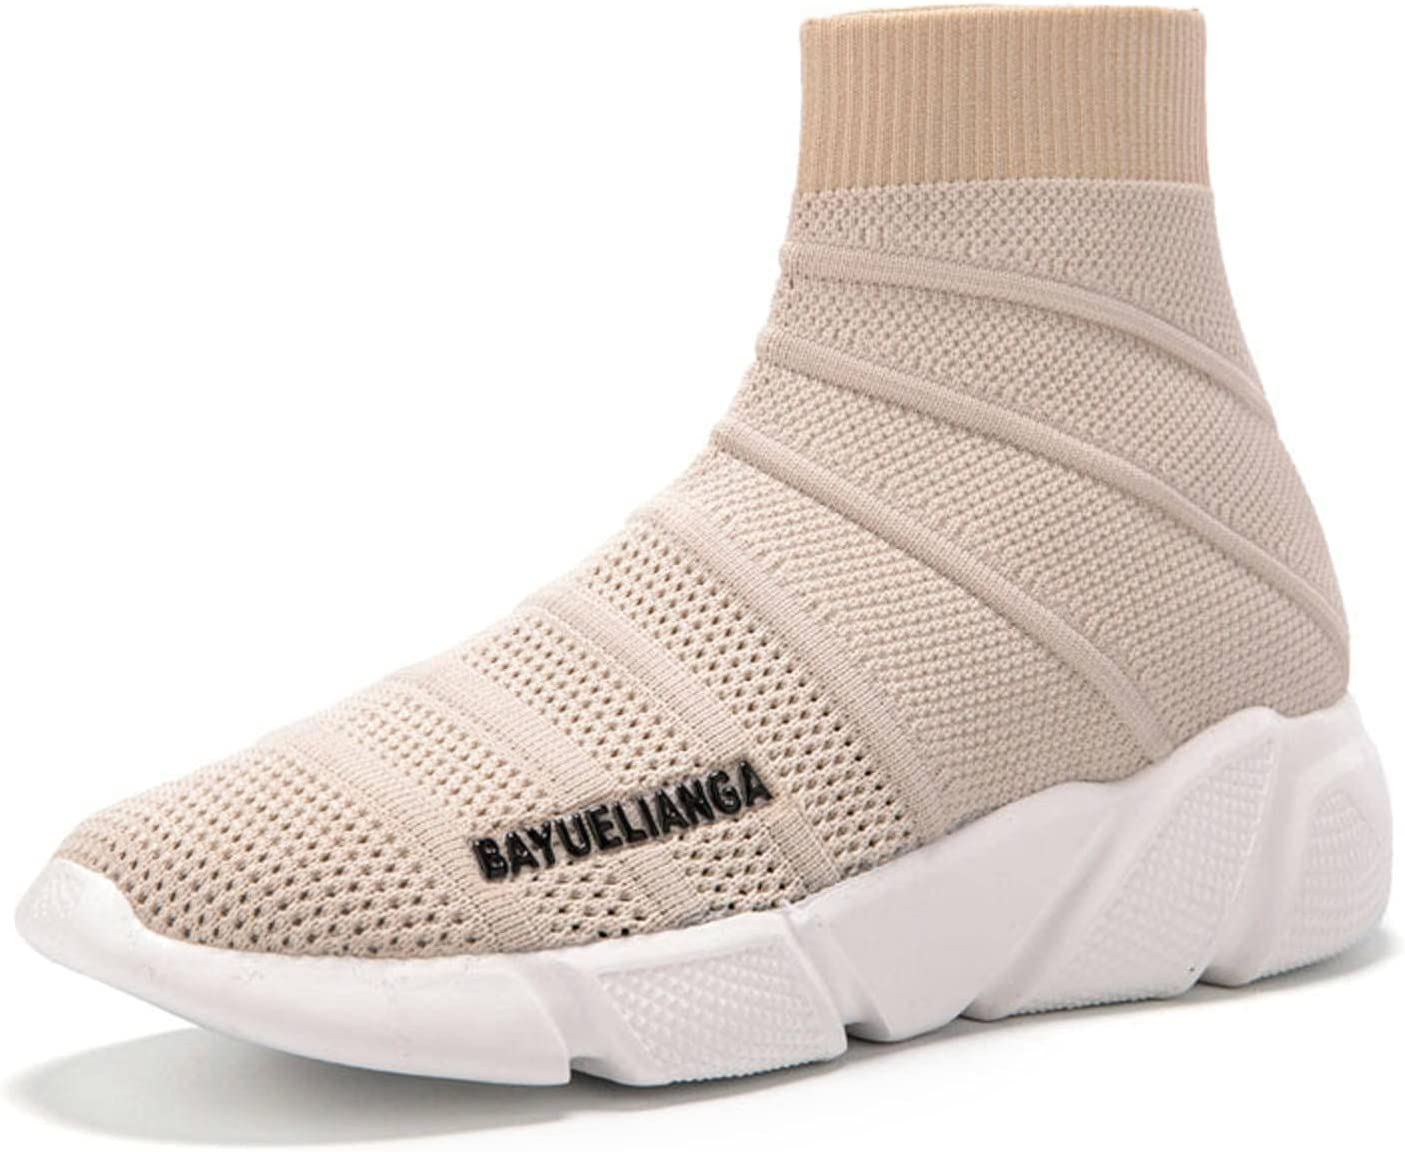 NC Ladies Socks Sports Shoes High-top Women's Shoes Casual Breathable Flying Woven Couple Walking Shoes